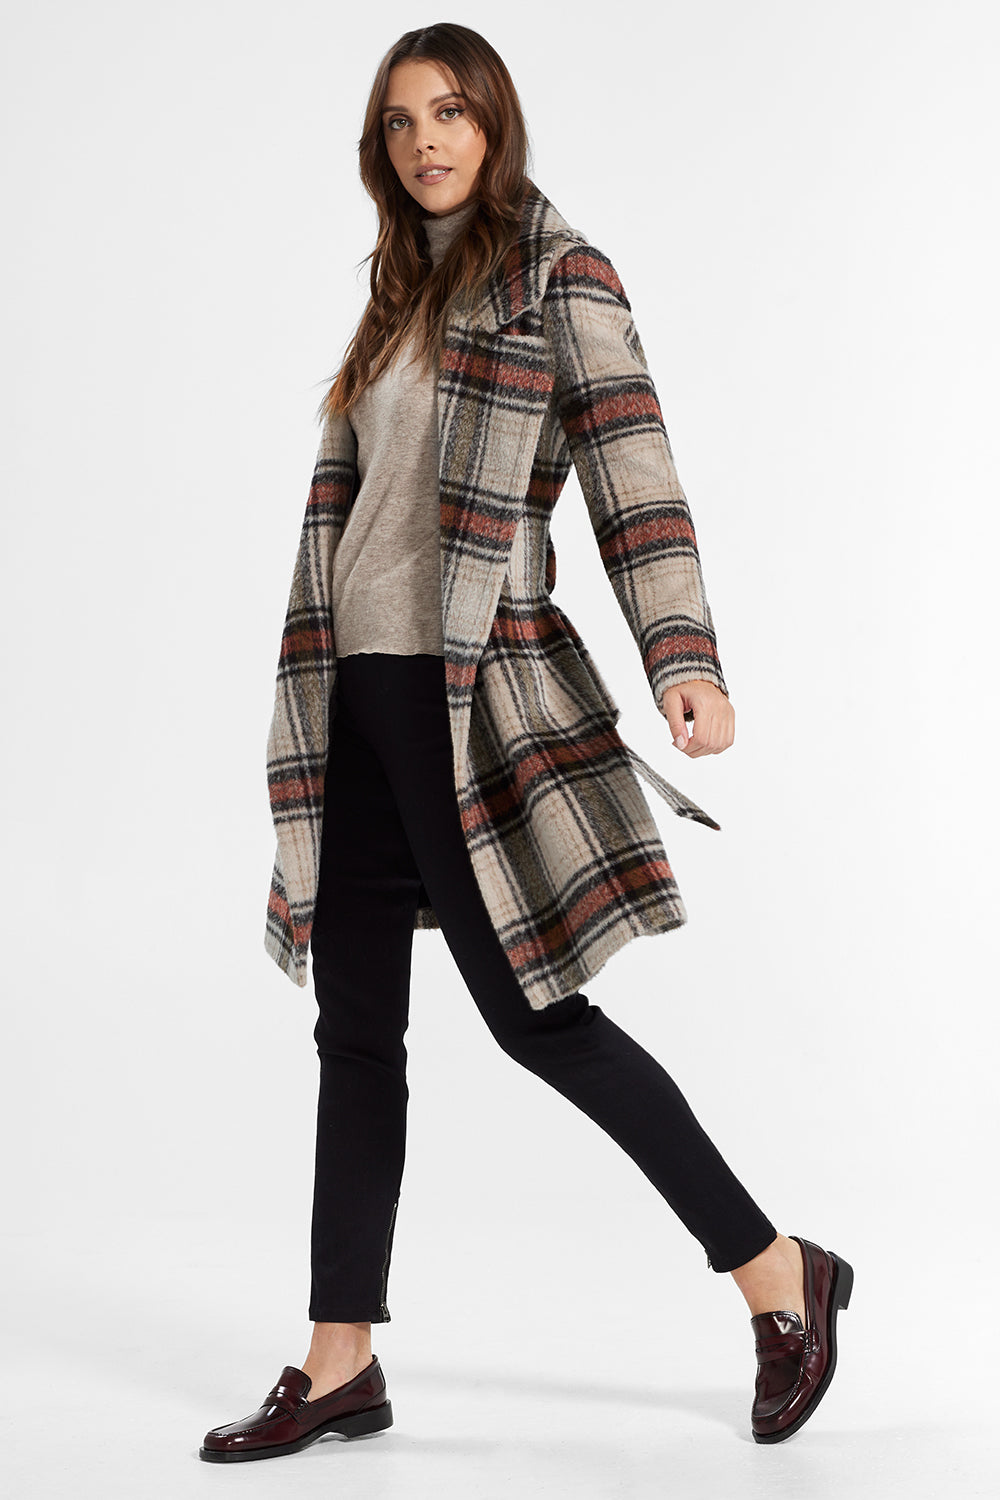 Sentaler Plaid Mid Length Notched Collar Wrap Coat featured in Suri Alpaca and available in Sand Plaid. Seen open.